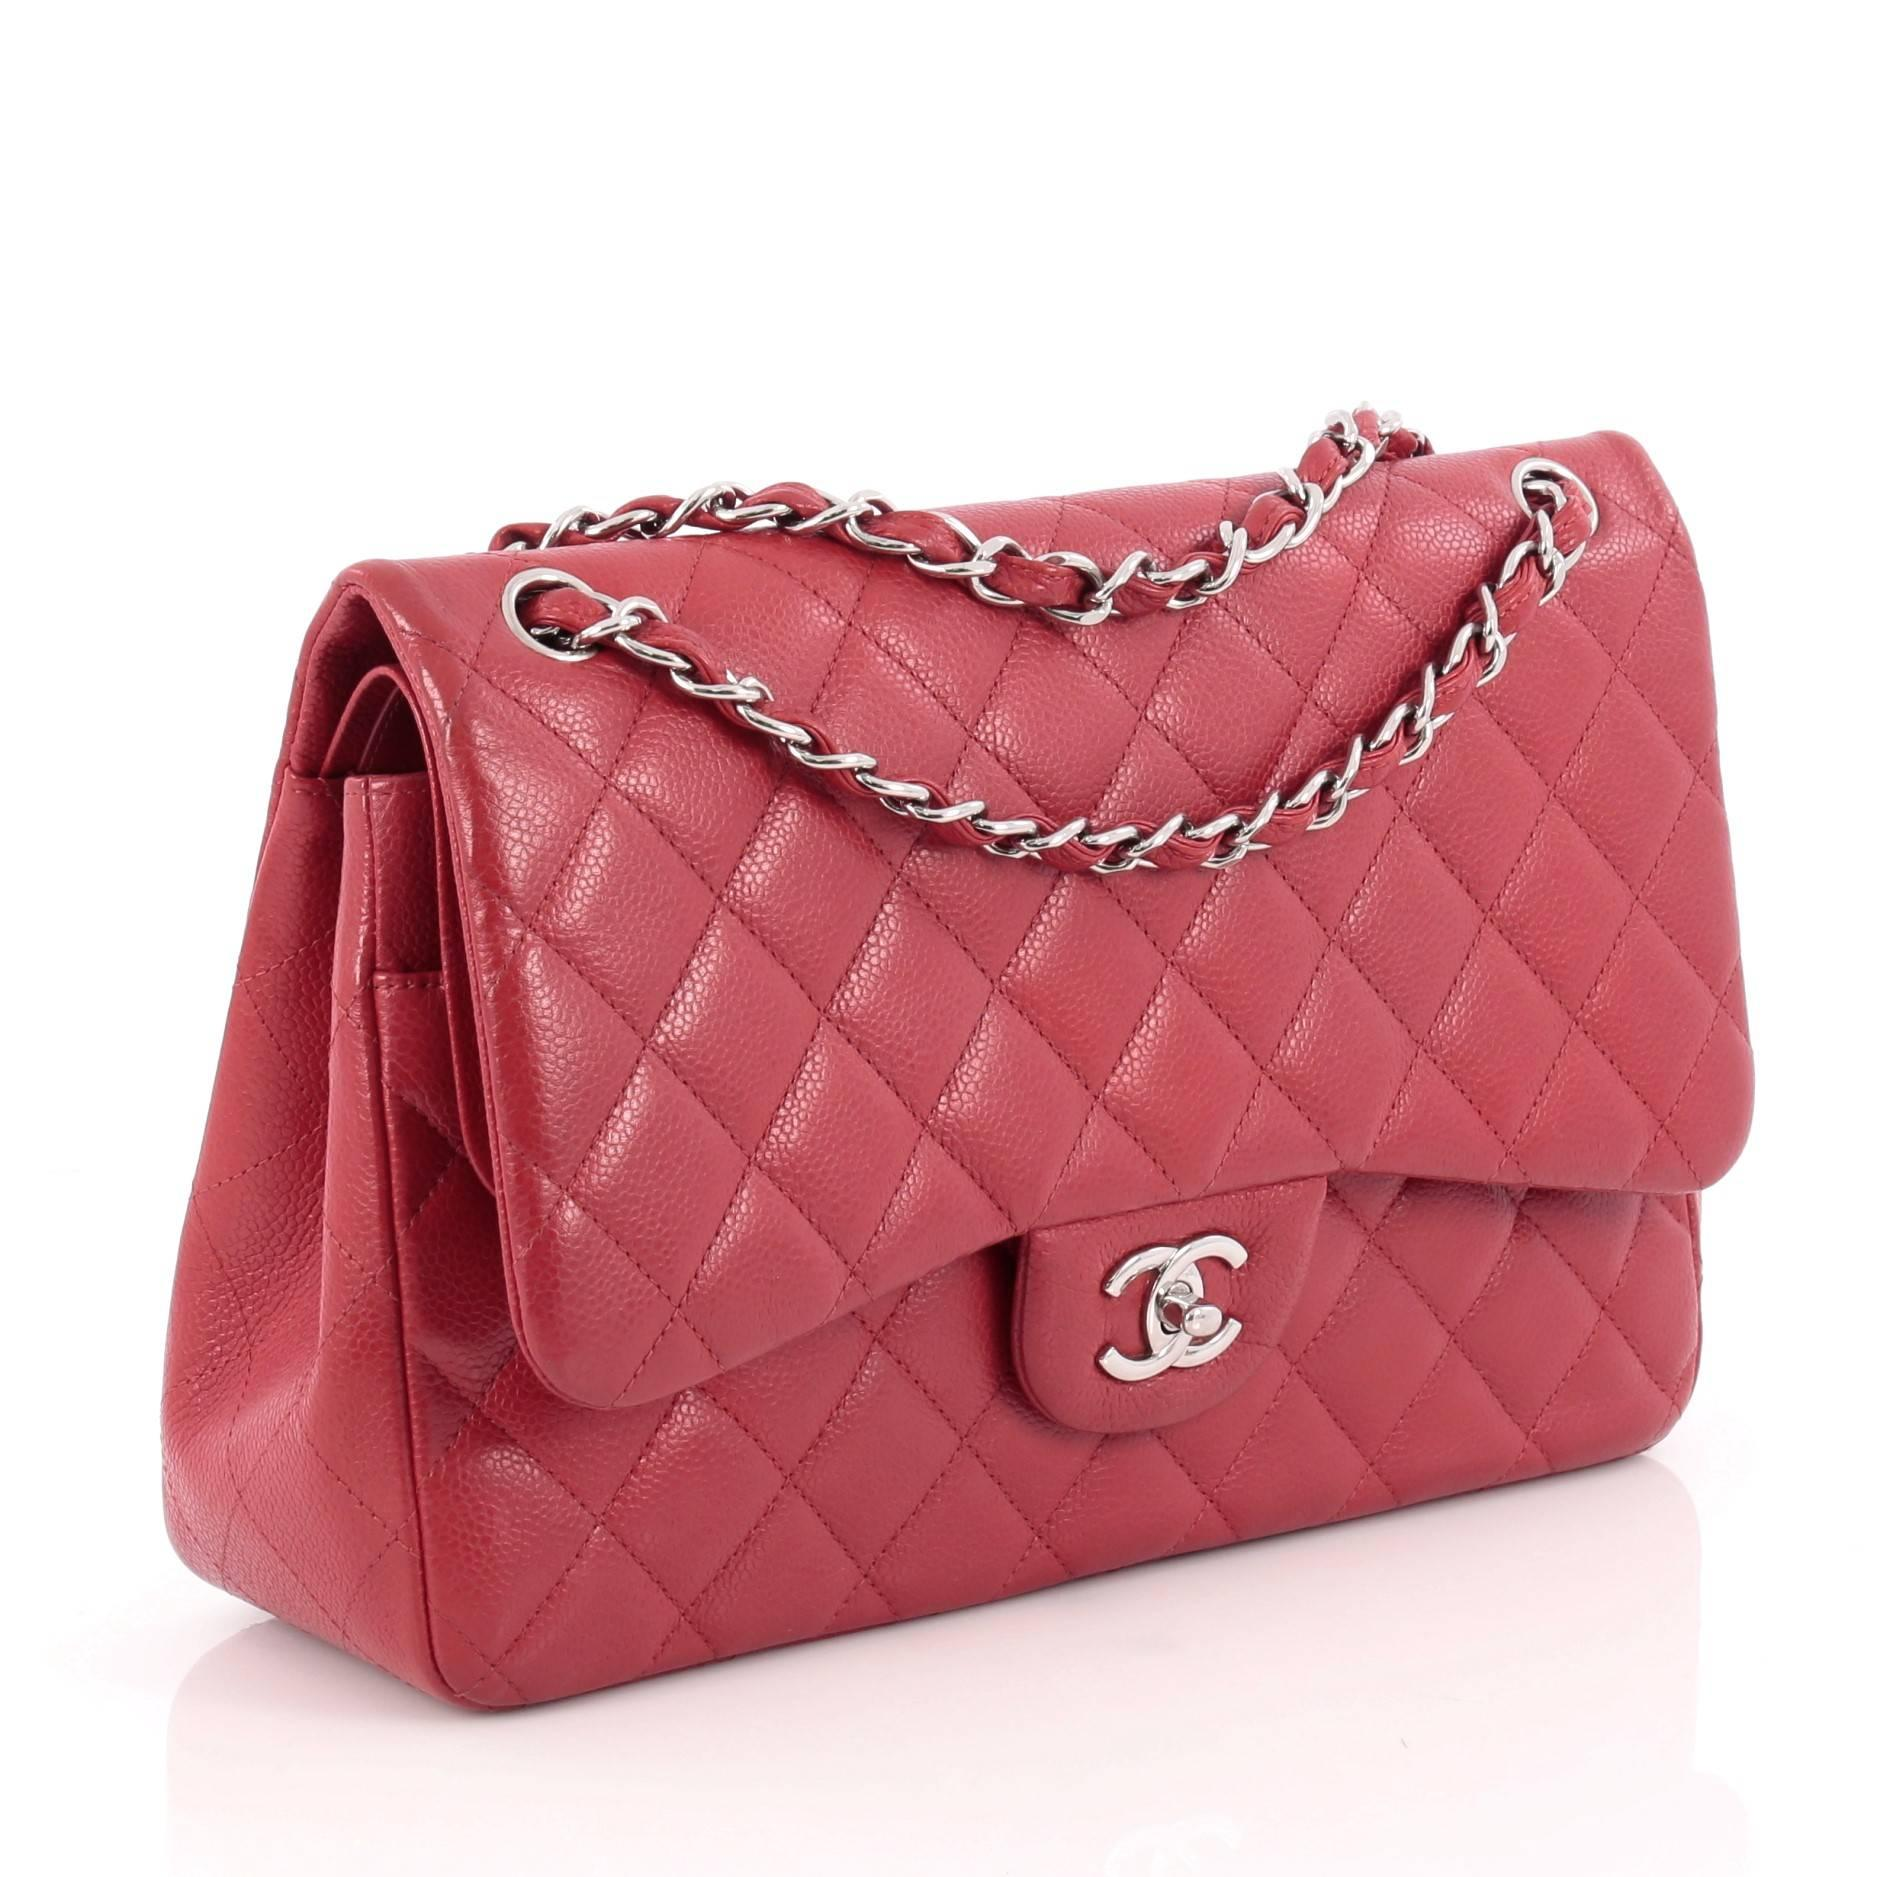 b16622f5e377 Chanel Classic Double Flap Bag Quilted Caviar Jumbo at 1stdibs